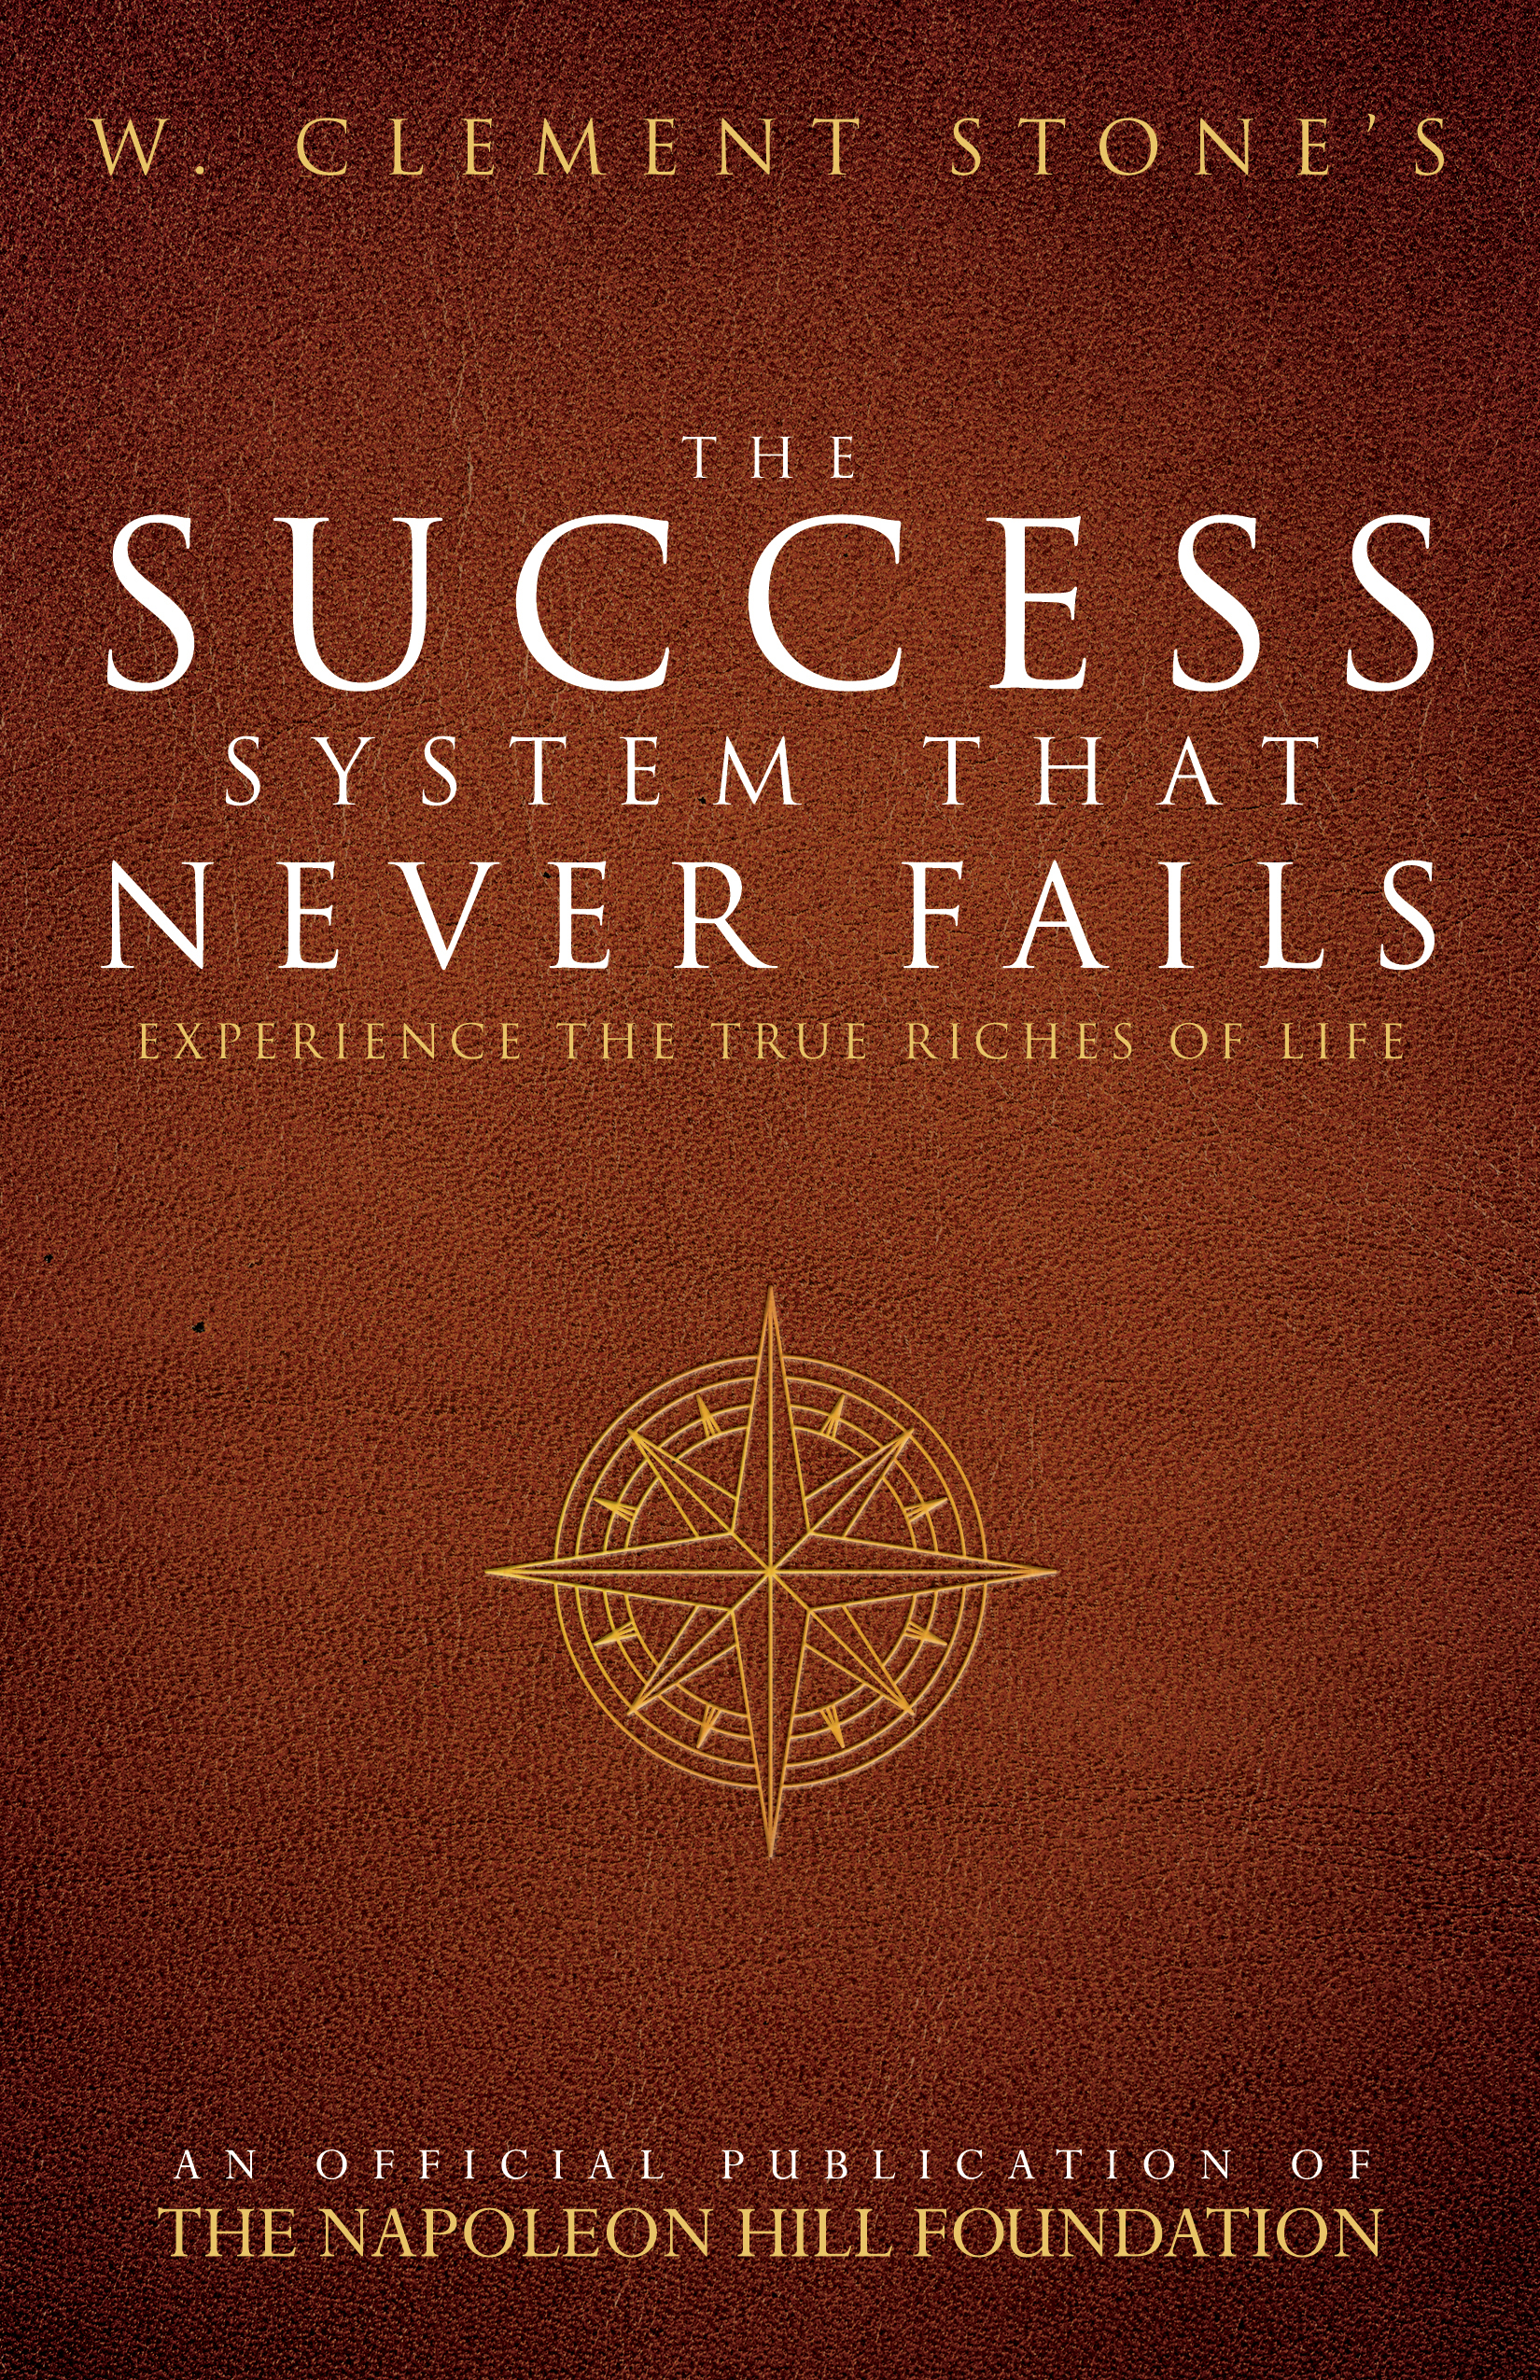 W. Clement Stone's The Success System That Never Fails - W. Clement Stone